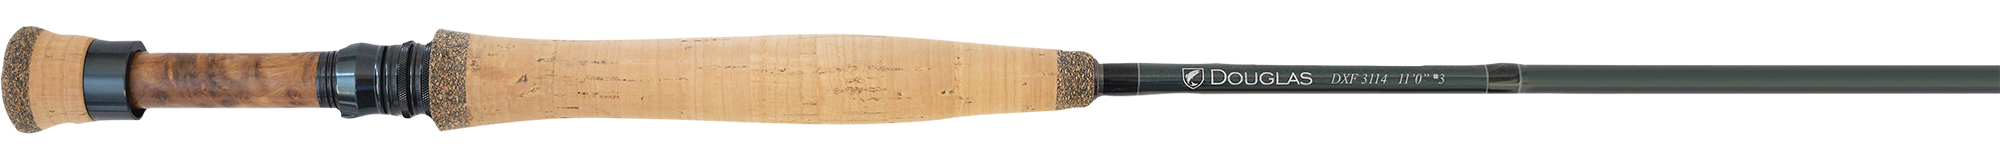 Douglas Outdoors Fly Rods Dxf Handle B